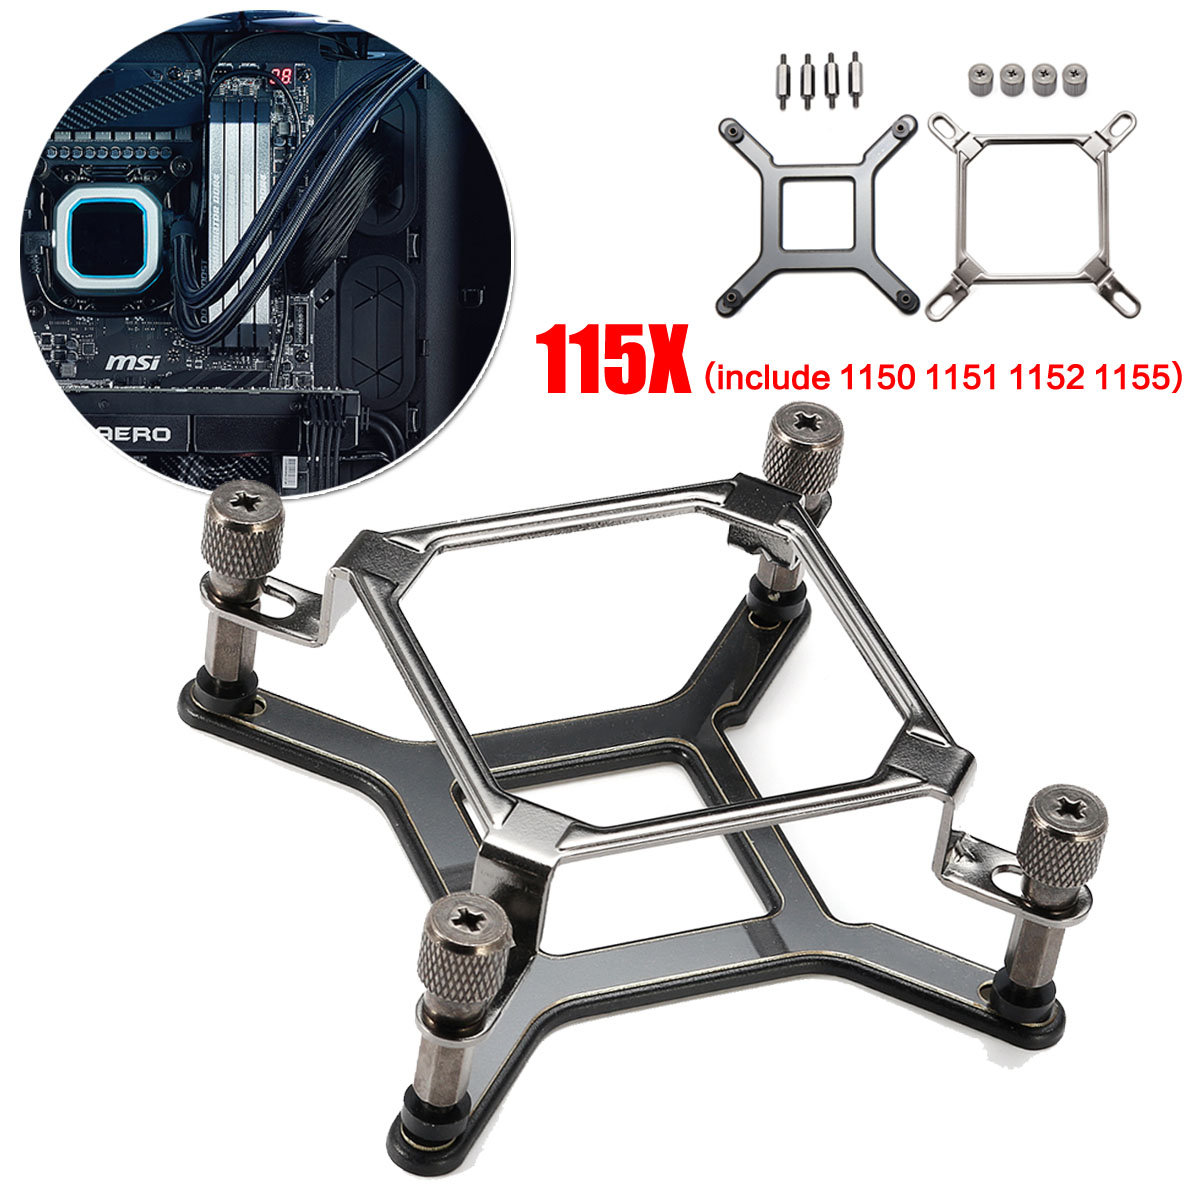 115x CPU Water Cooler Mounting Bracket Hardware Kit For Intel LGA 1150 1151 1155 1156 For CORSAIR Hydro H60 H80i H100i H110i GT